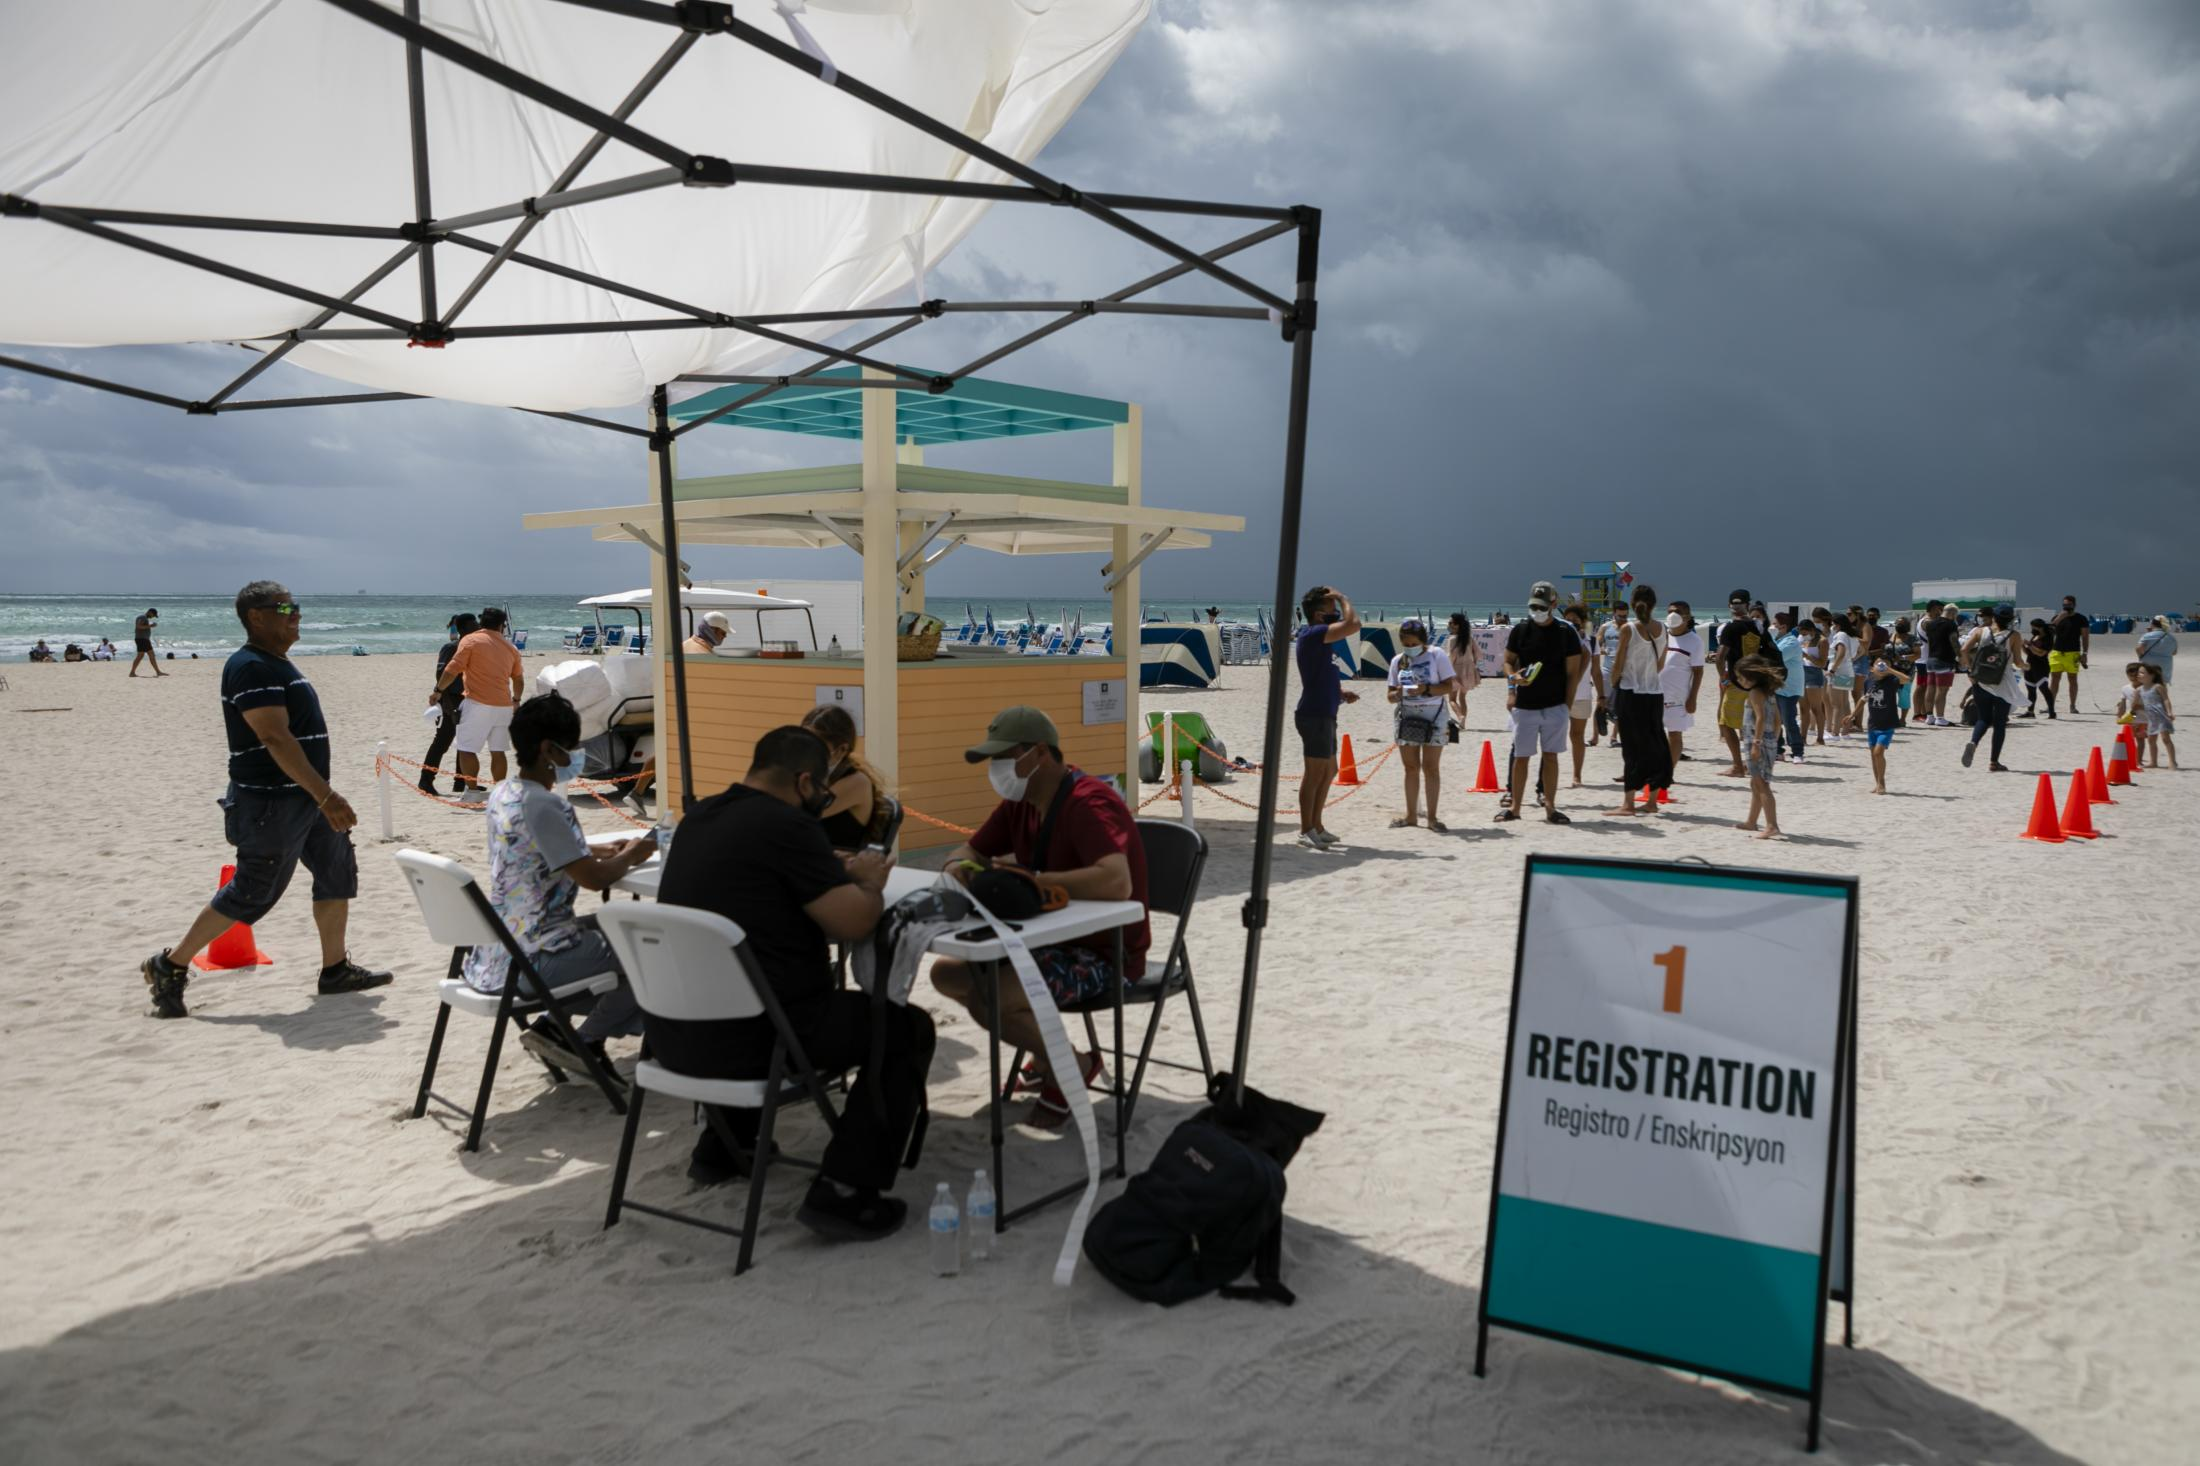 People check in to get Johnson & Johnson COVID-19 vaccine at a pop-up vaccination center at the beach, in South Beach, Florida, on May 9, 2021. Eva Marie UZCATEGUI / AFP6